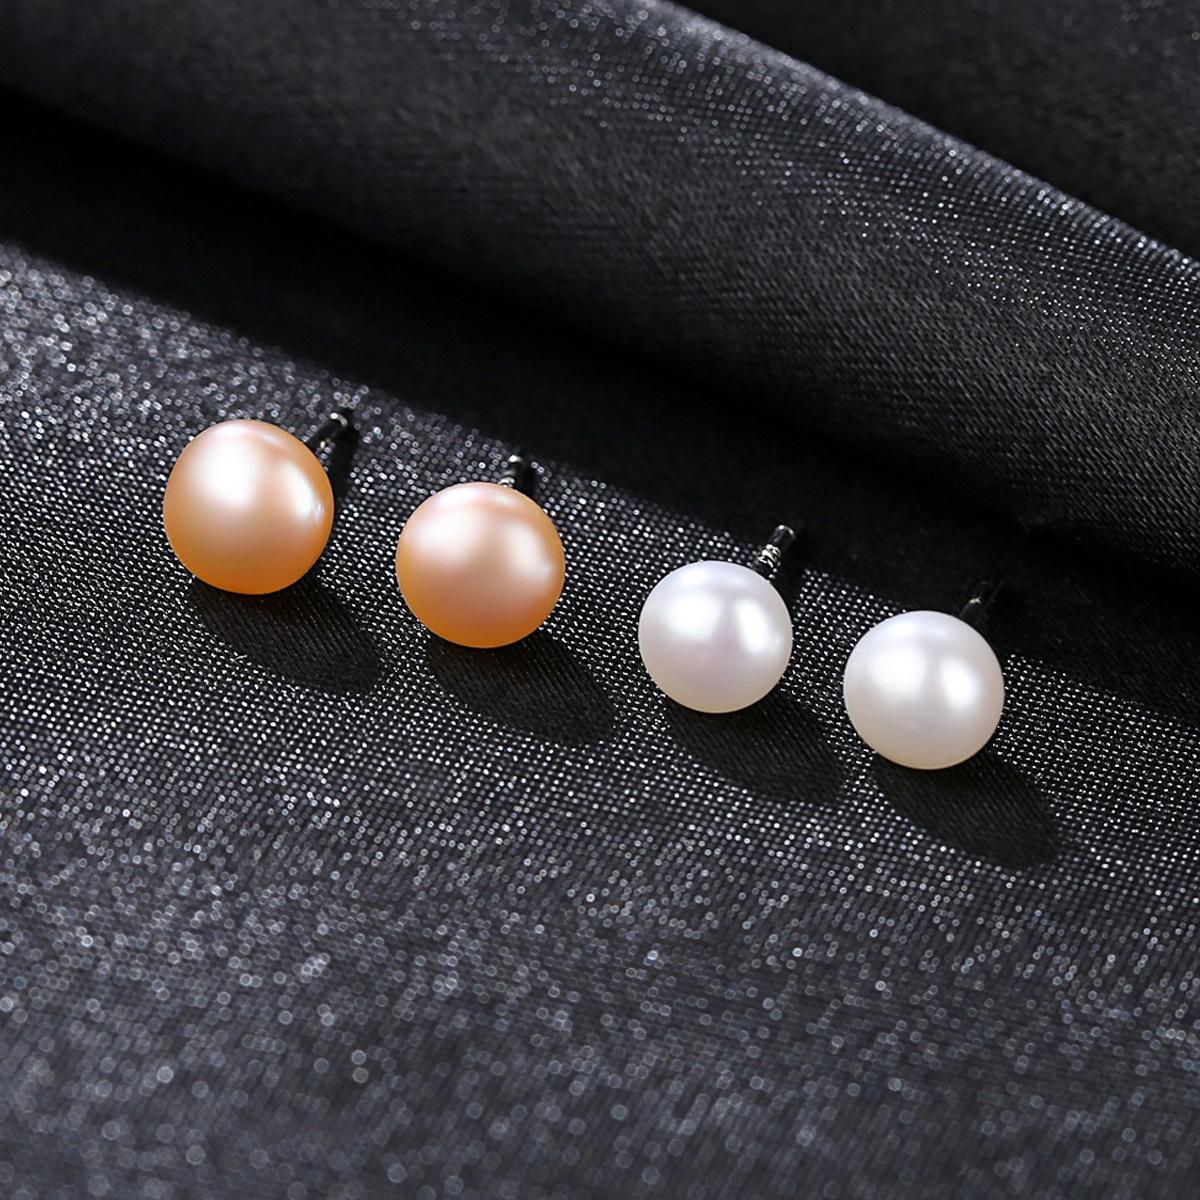 YUEYIN 925 Sterling Silver Earrings for Women Small 6mm Pearl High Quality Cute